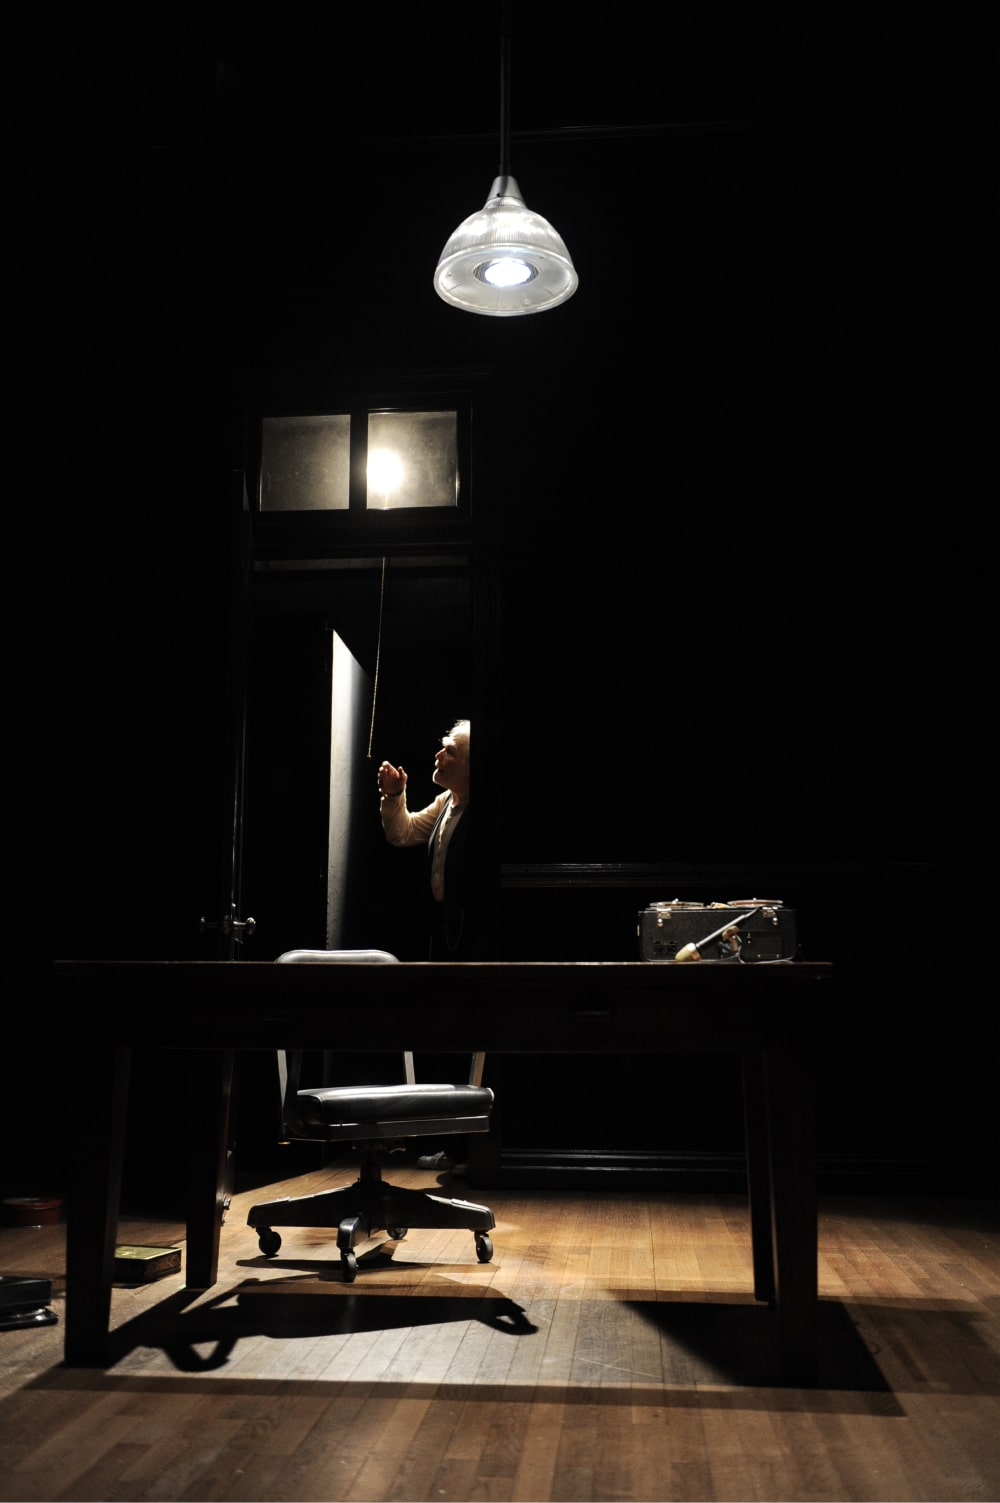 Starkly lit man in closet reaches for light pull-chain, foregrounded by desk under hanging lamp.